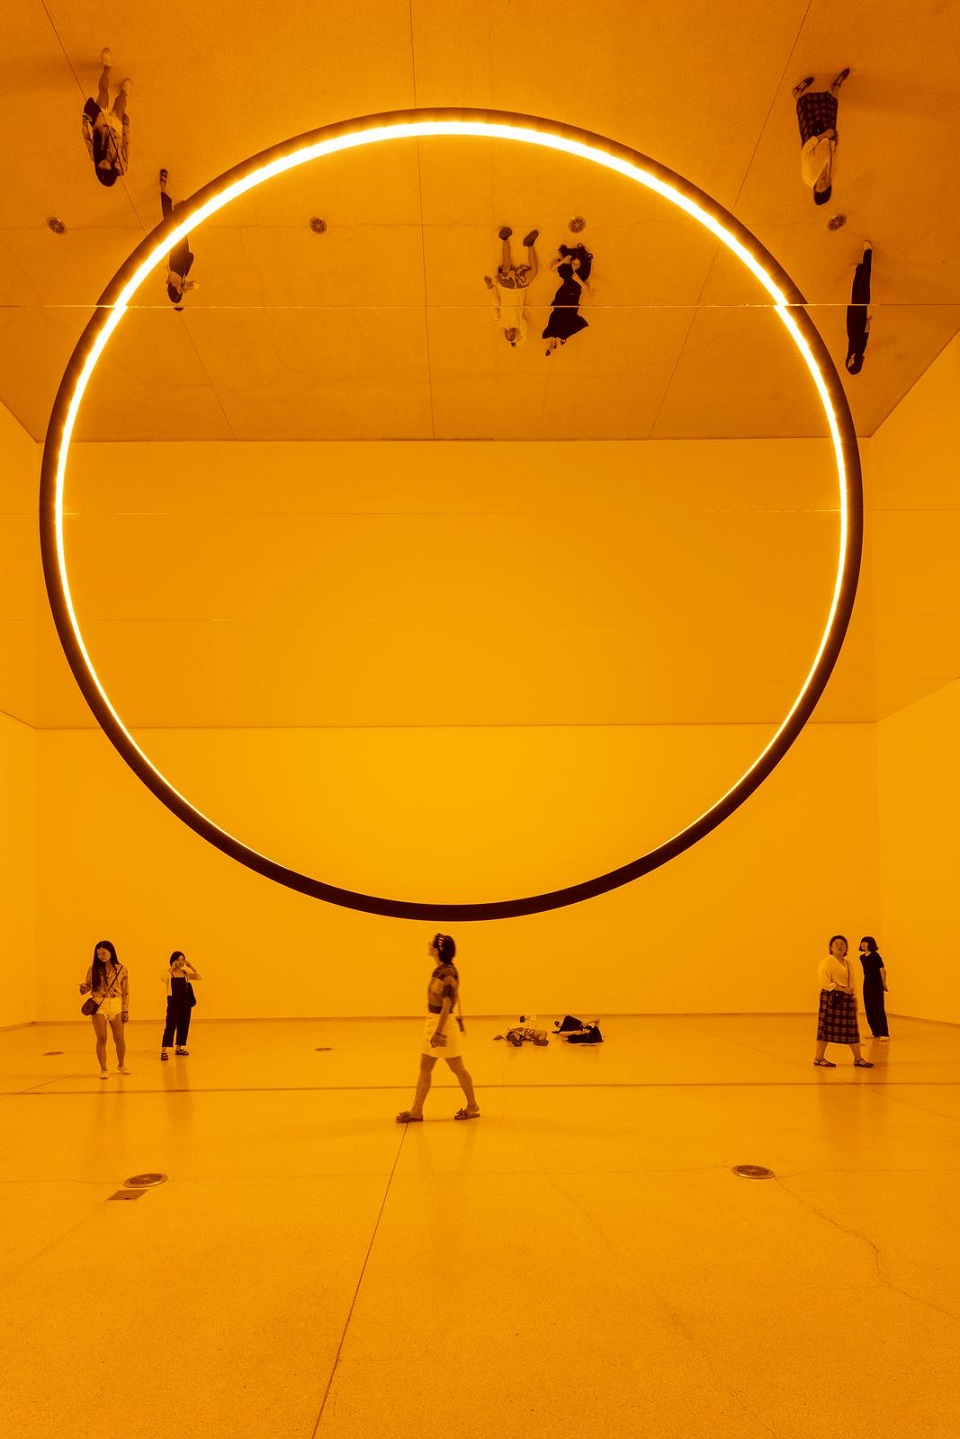 Olafur Eliasson, The unspeakable openness of things, 2018